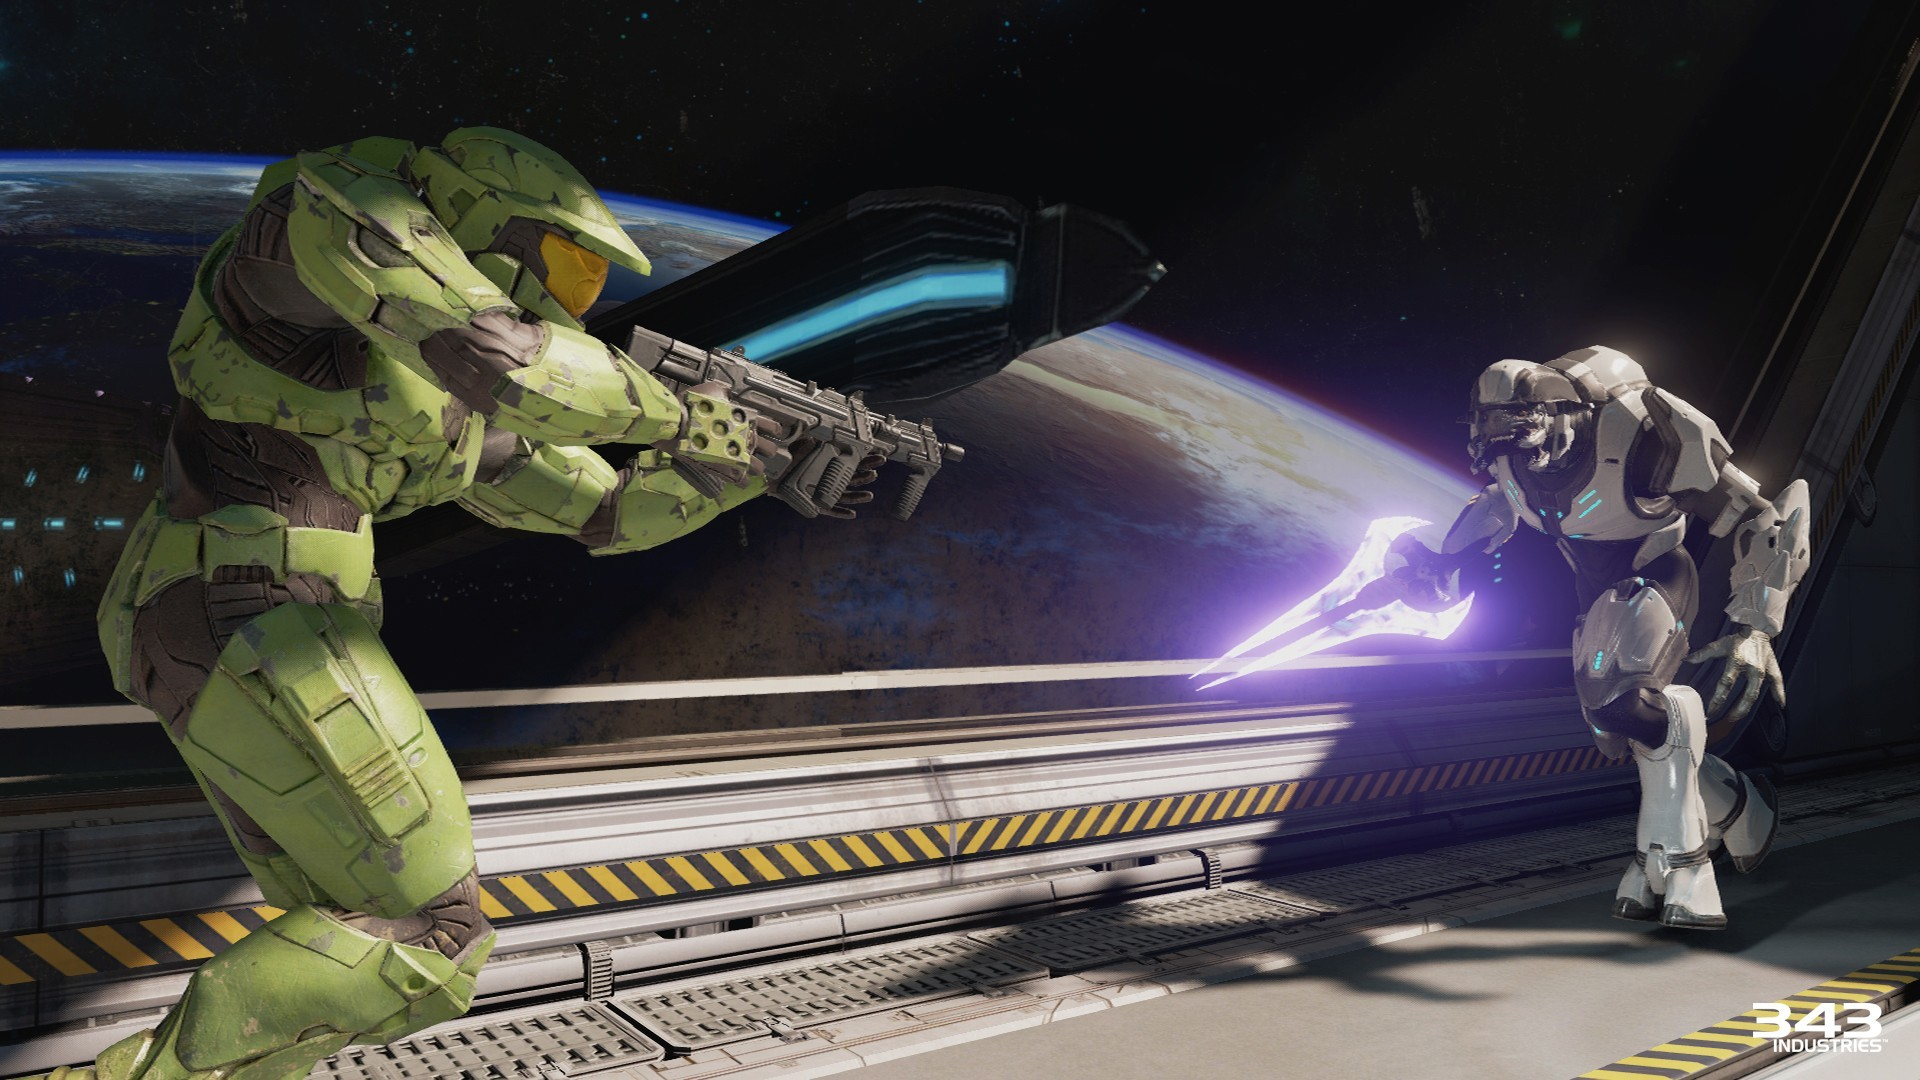 Res: 1920x1080, Halo 2 gets Anniversary treatment in Halo: The Master Chief Collection